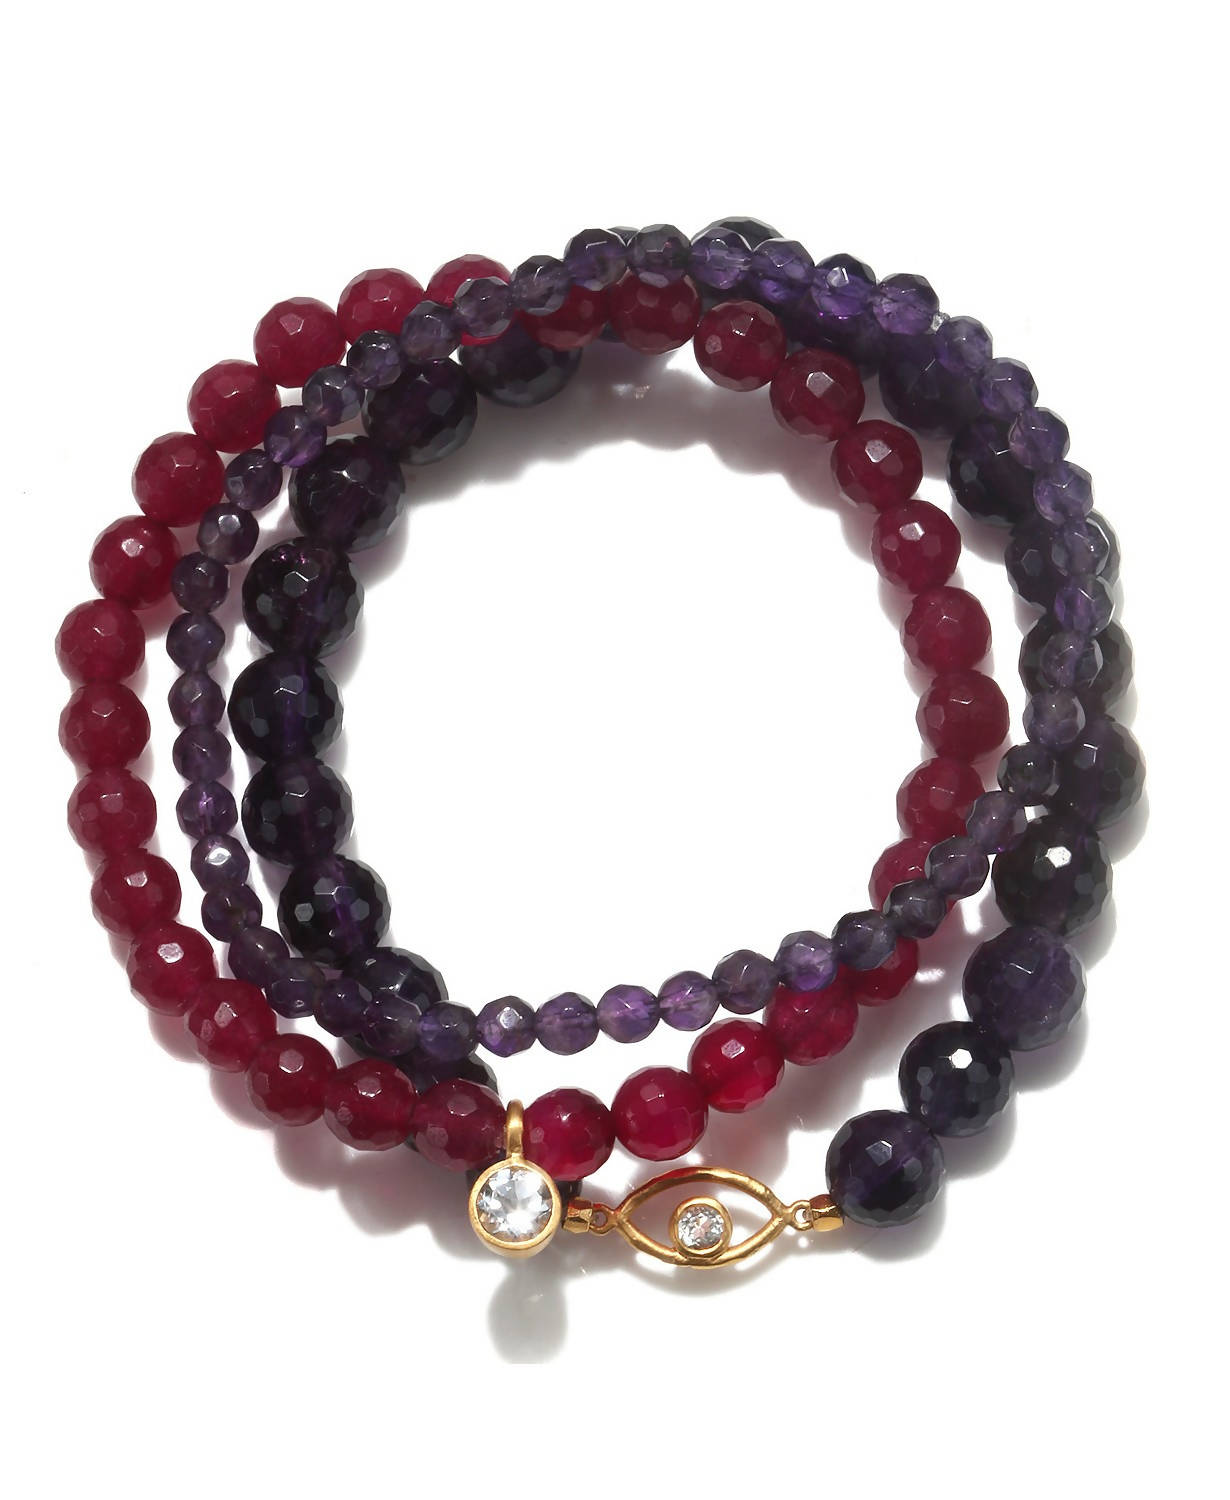 Amethyst & Fuchsia Agate Gold Evil Eye Stretch Bracelet Set